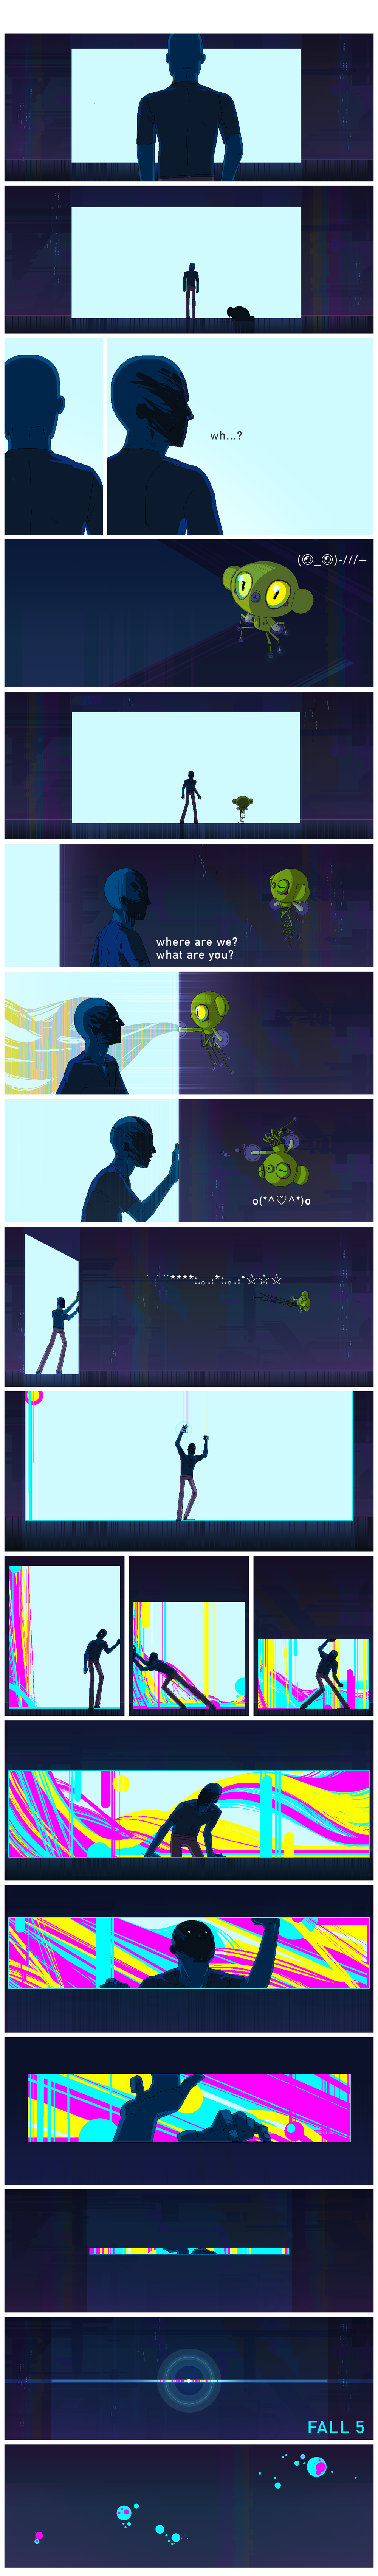 006.png